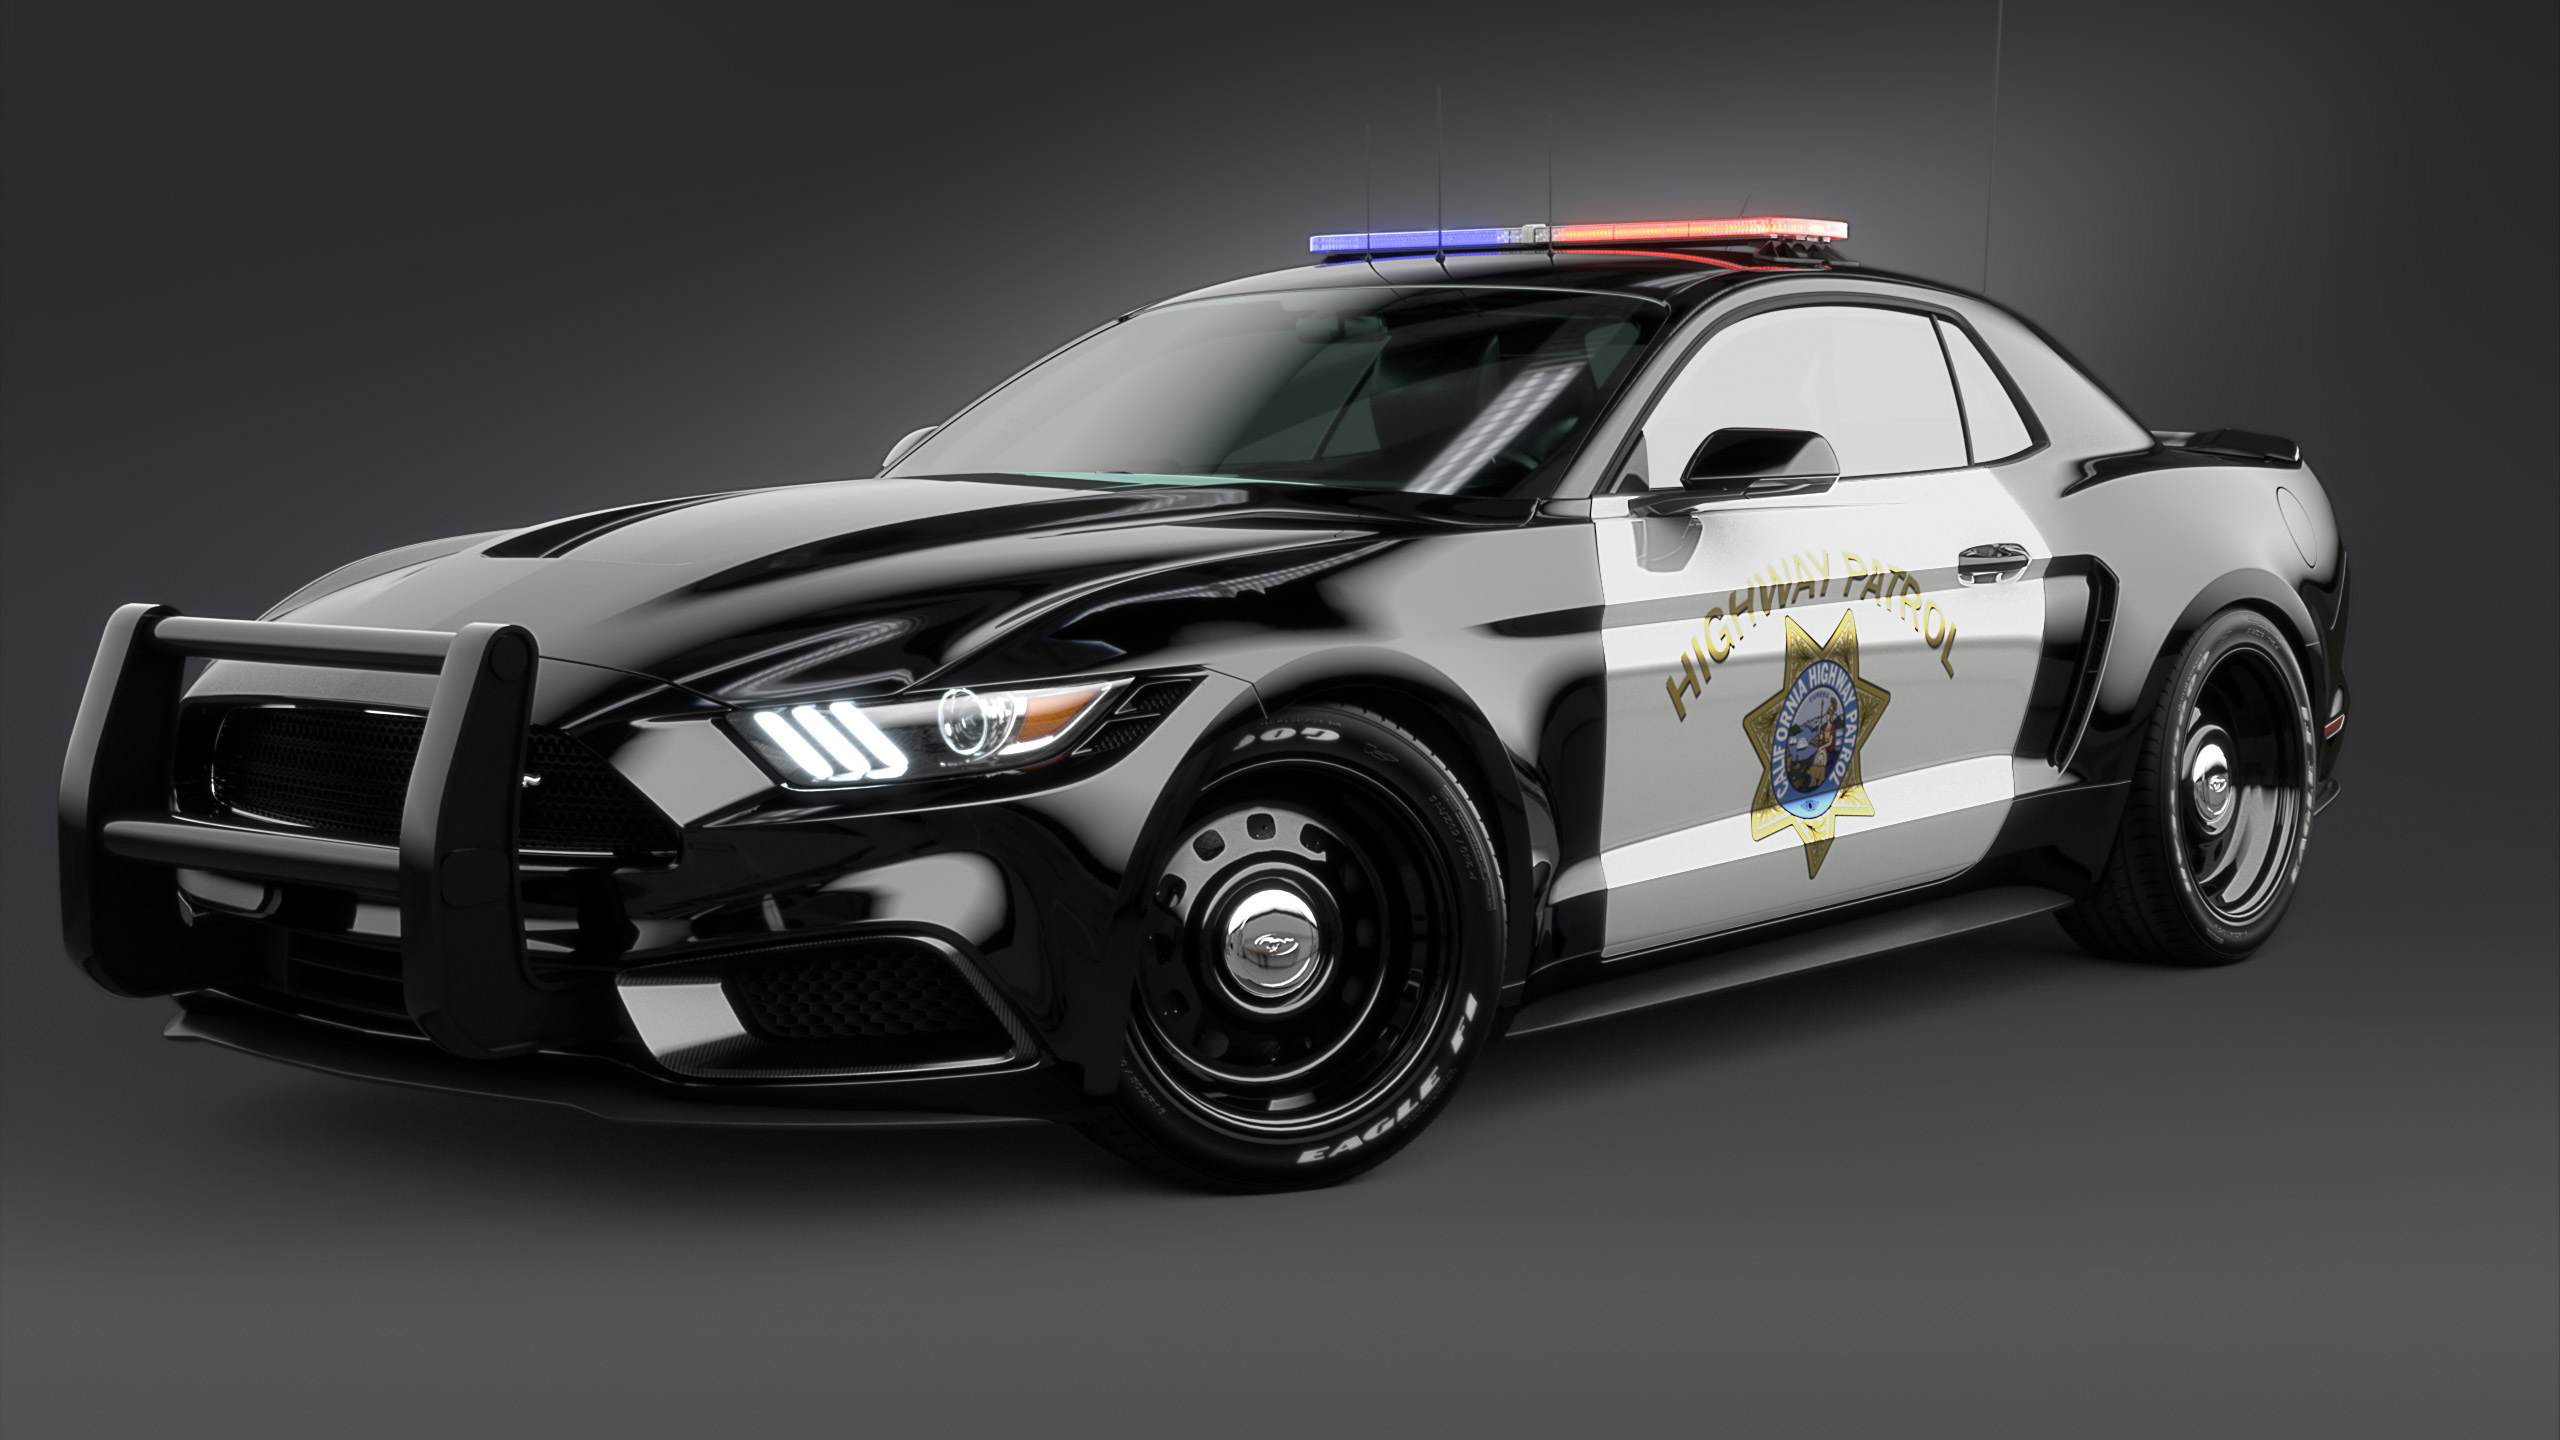 2017 Ford Mustang NotchBack Design Police 2